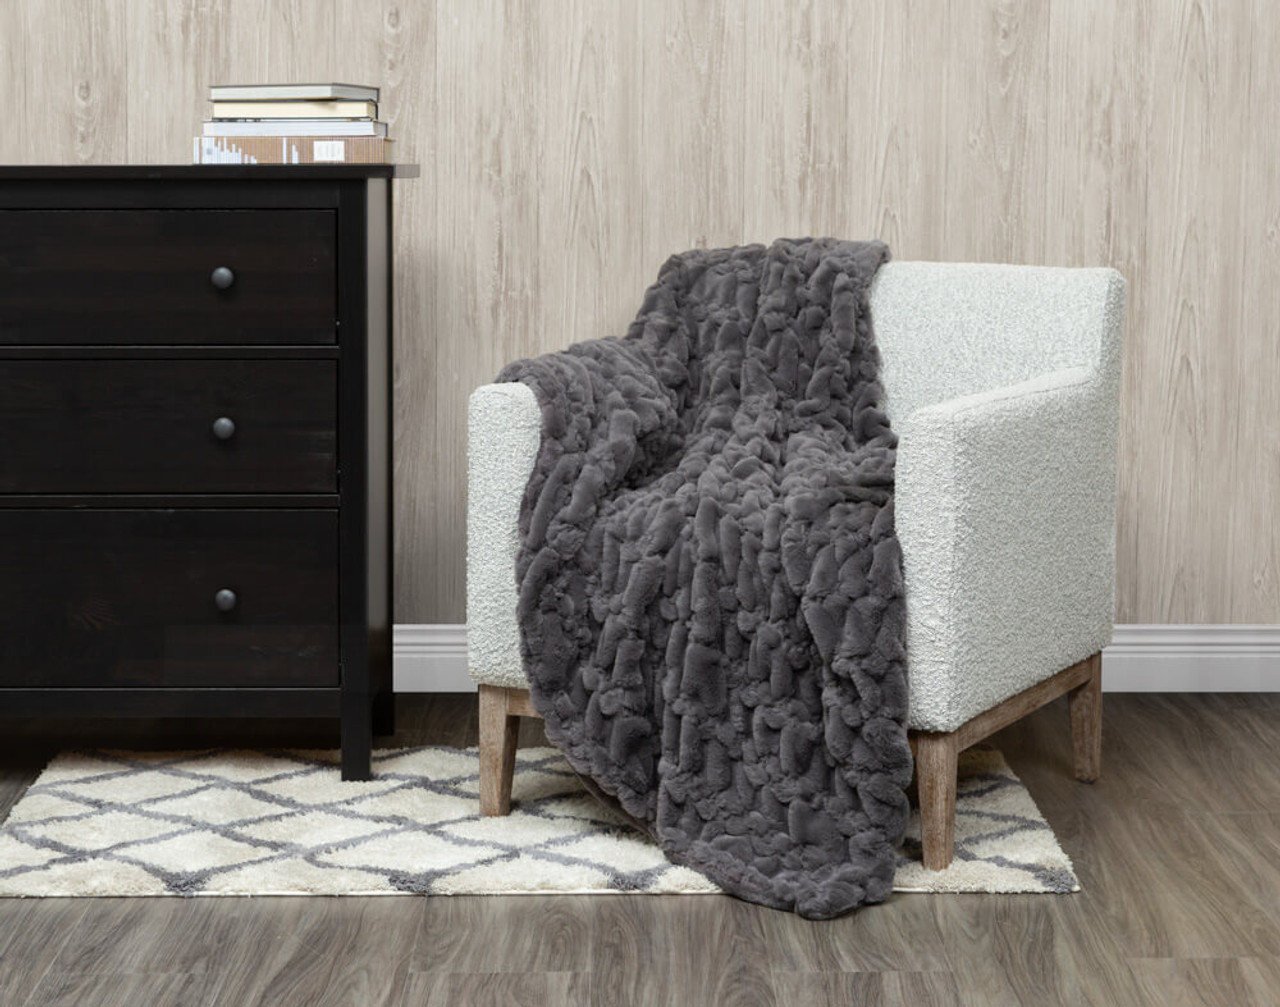 Our Carved Faux Fur Throw in Graphite Grey, draped over a chair.